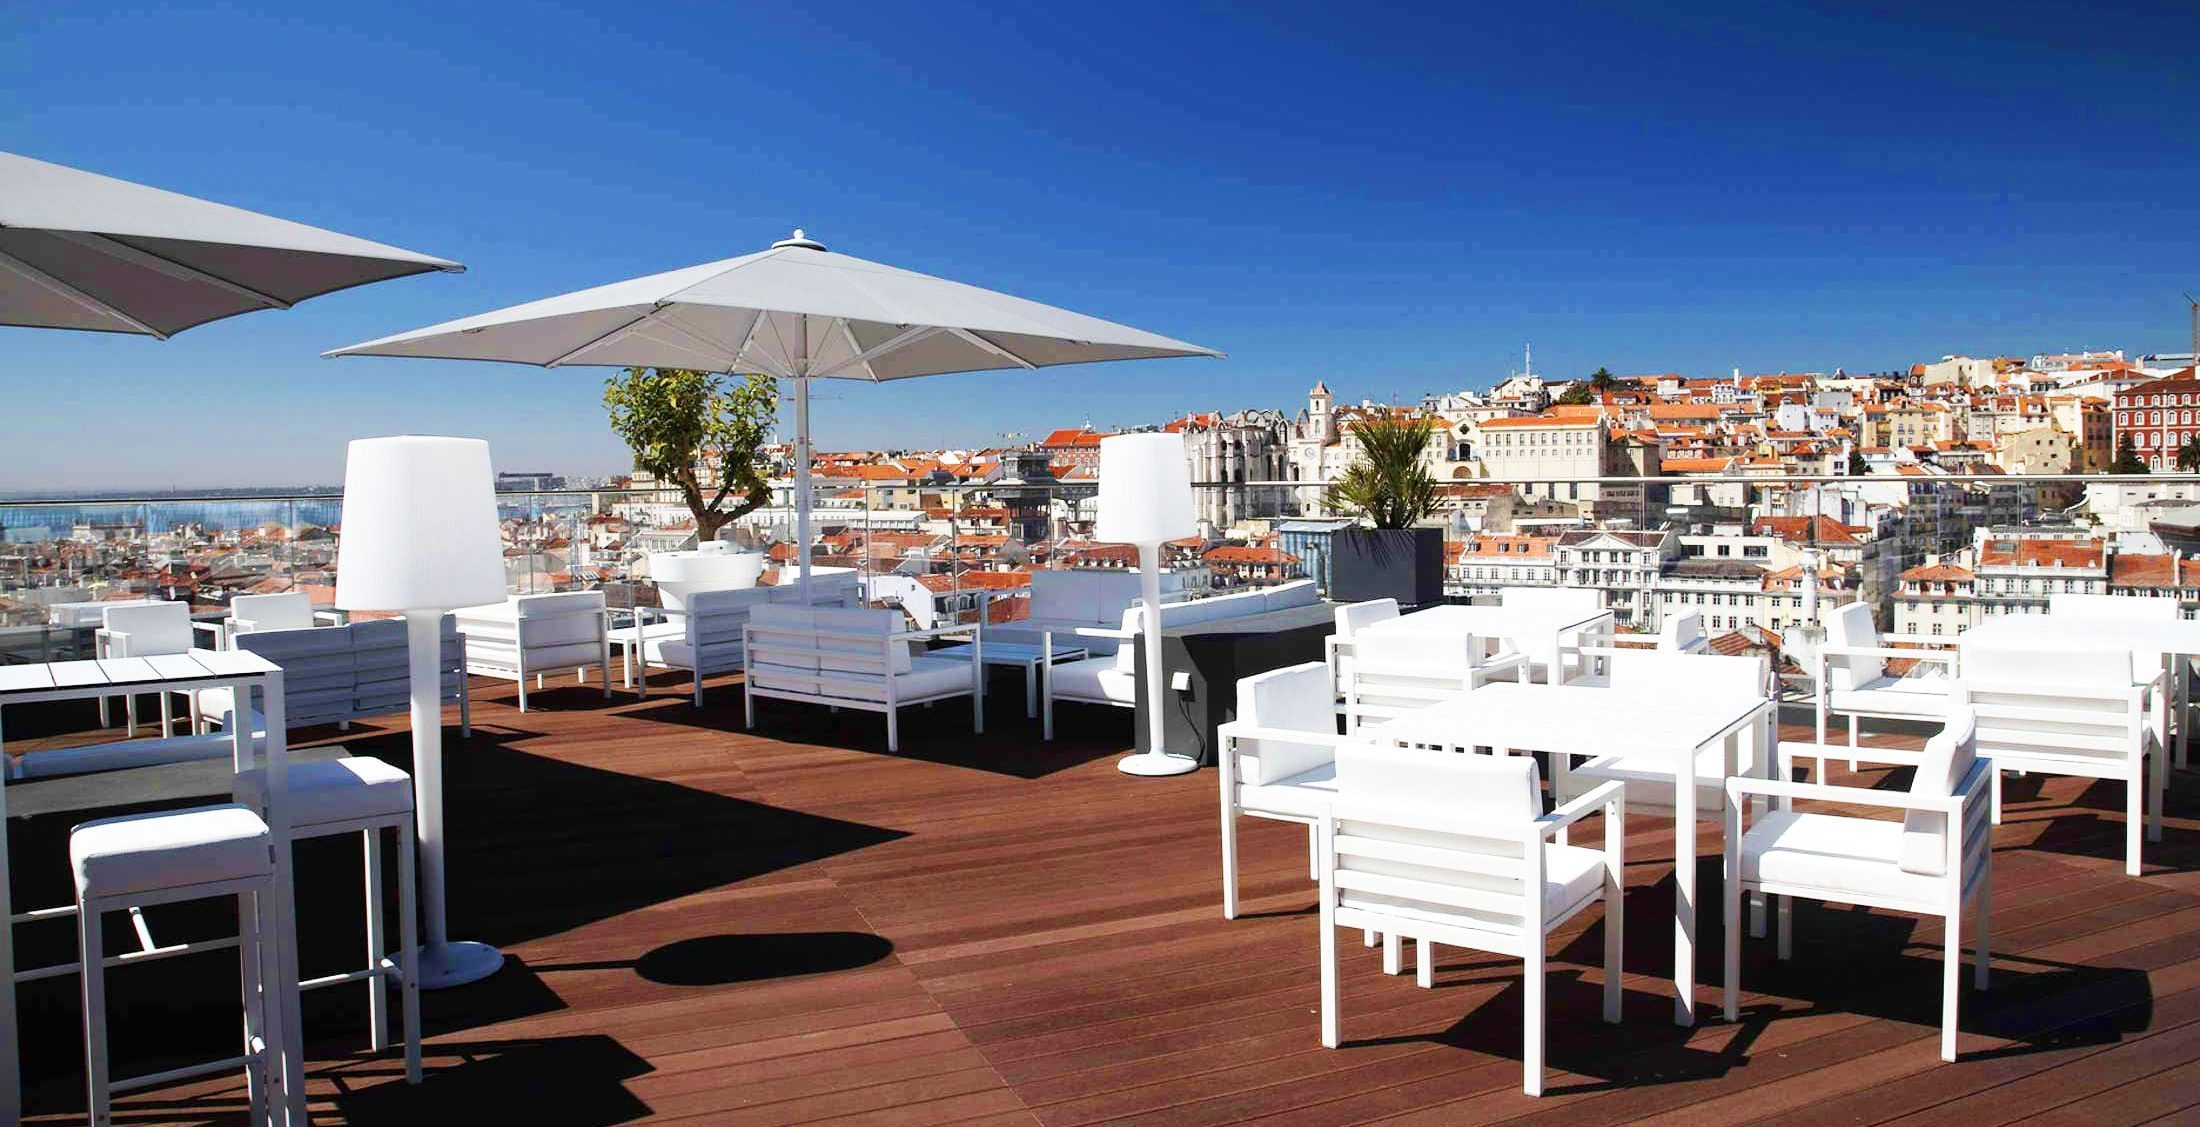 The Best Rooftop Bars in Portugal best rooftop bars in portugal The Best Rooftop Bars in Portugal Memmo Alfama 2